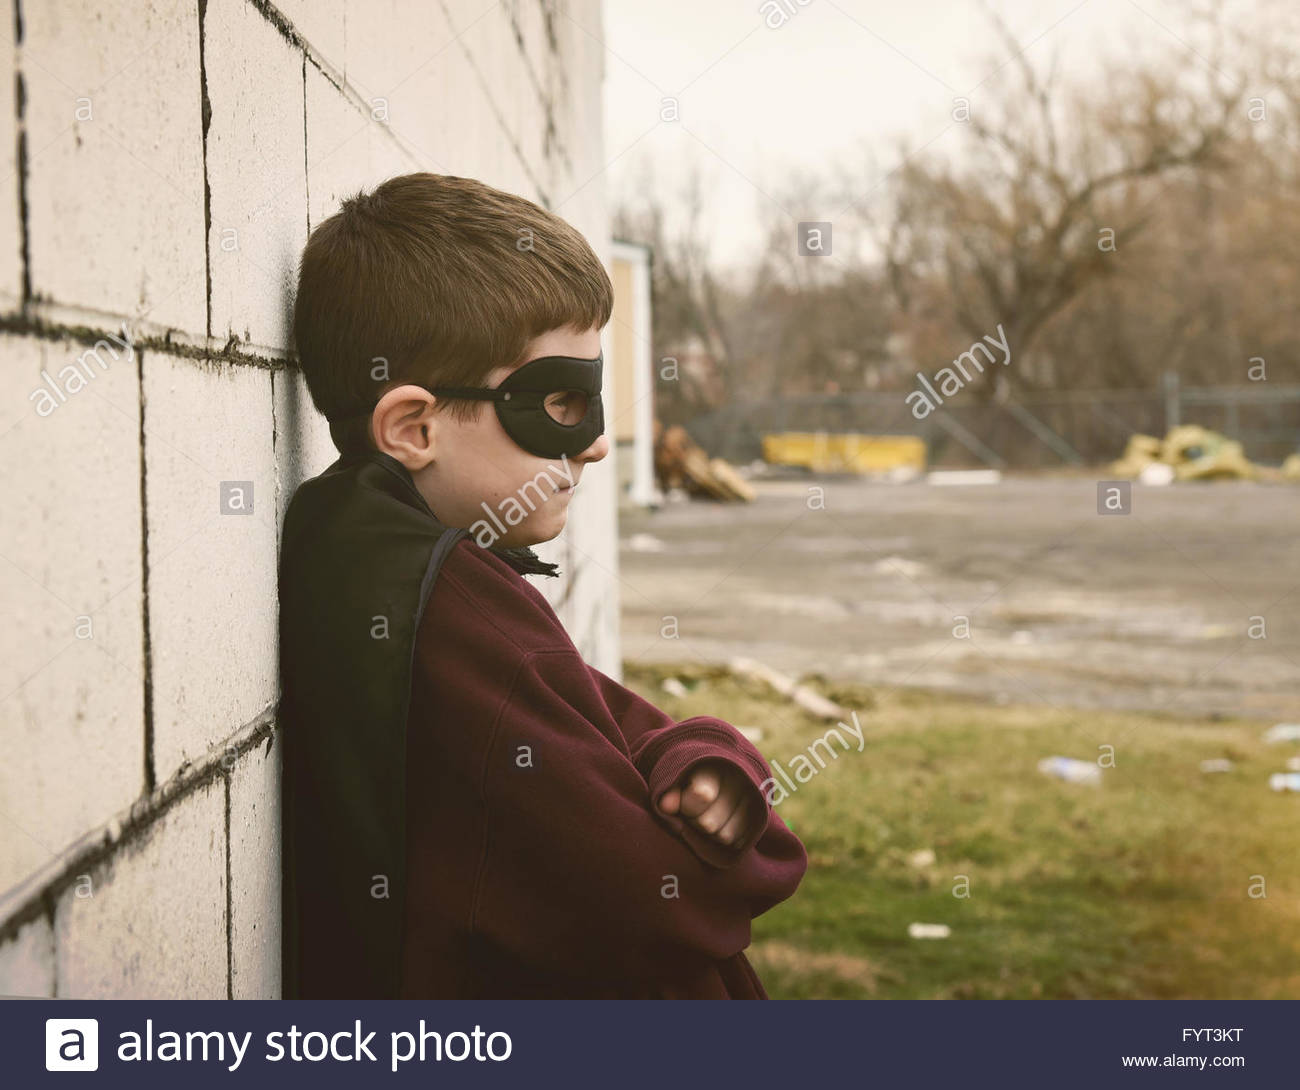 A young boy is dressed as a super hero against a wall with a city fence and pollution for an environment or safety - Stock Image